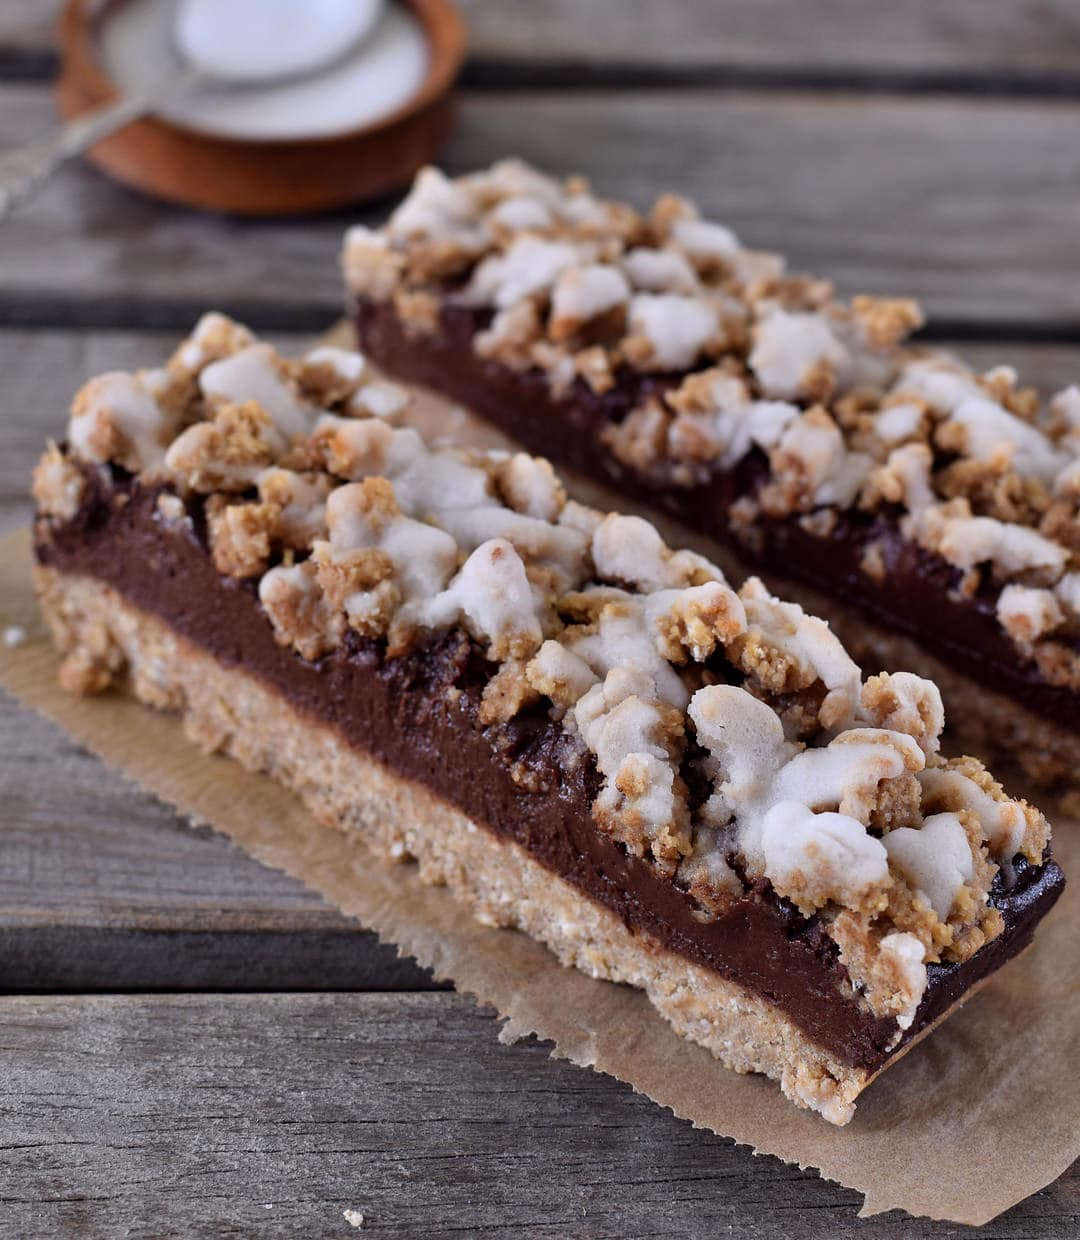 Chocolate oat breakfast crumble bars